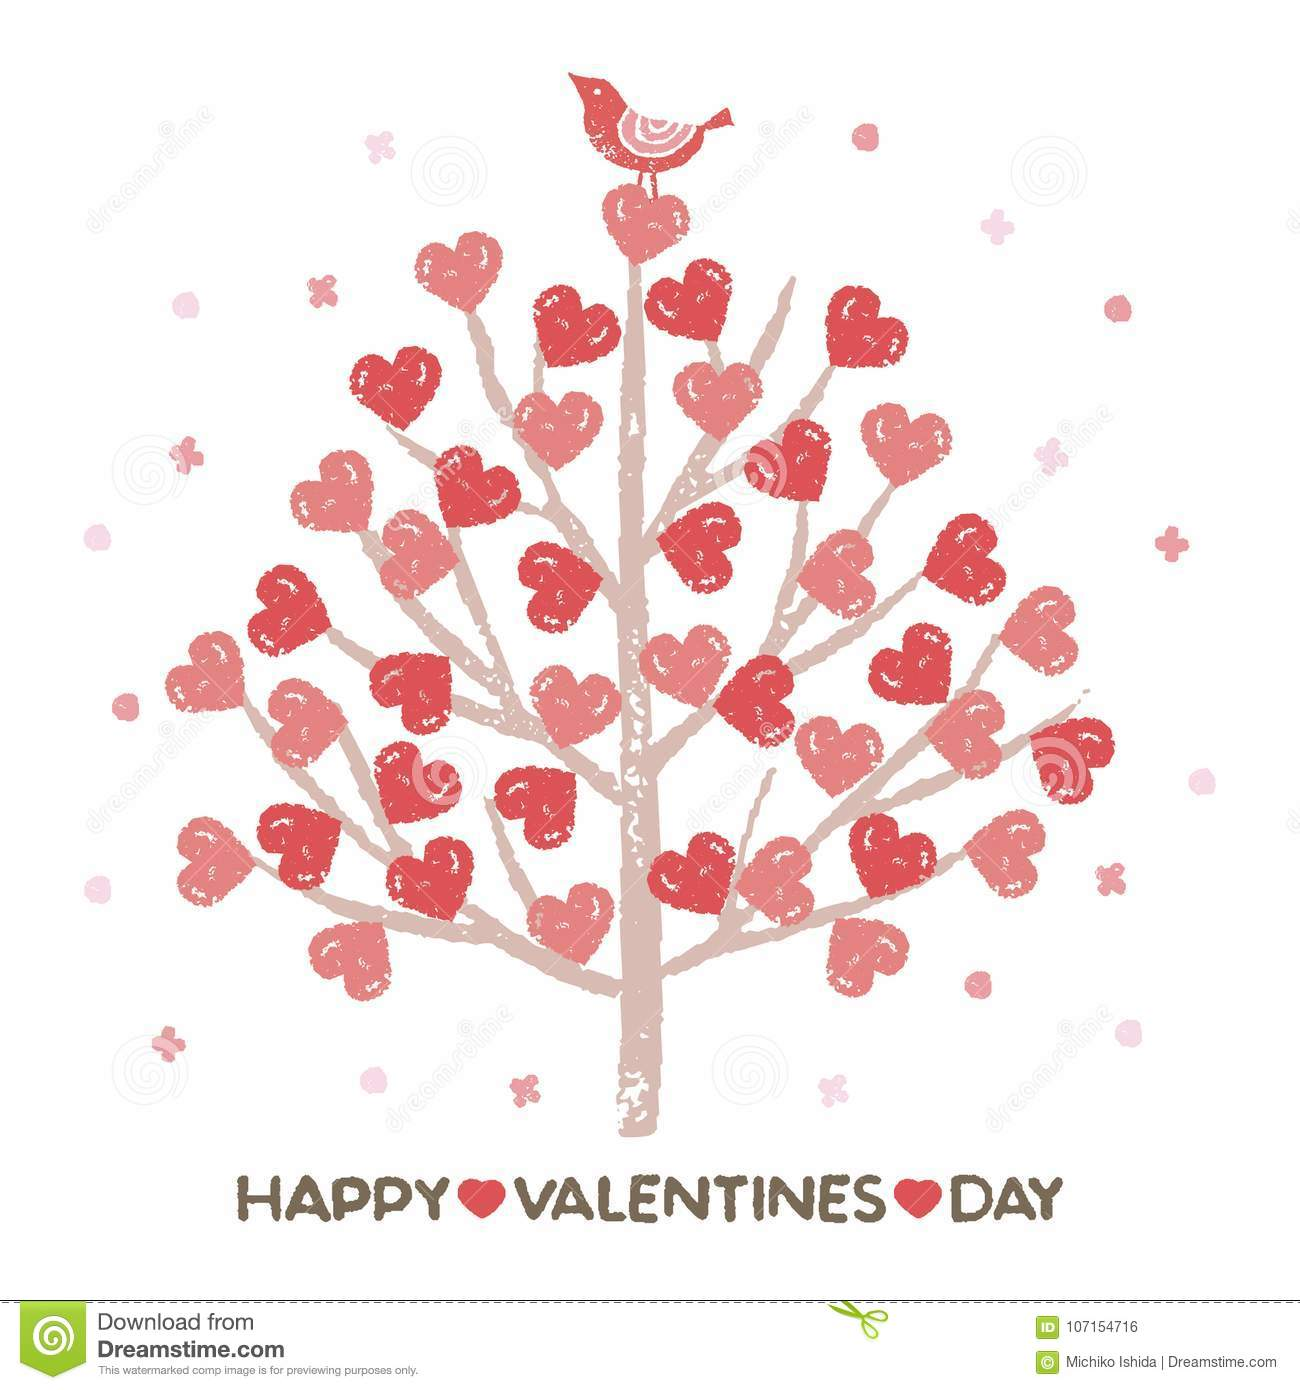 Valentines day tree with heart shaped leaves stock vector download valentines day tree with heart shaped leaves stock vector illustration of mightylinksfo